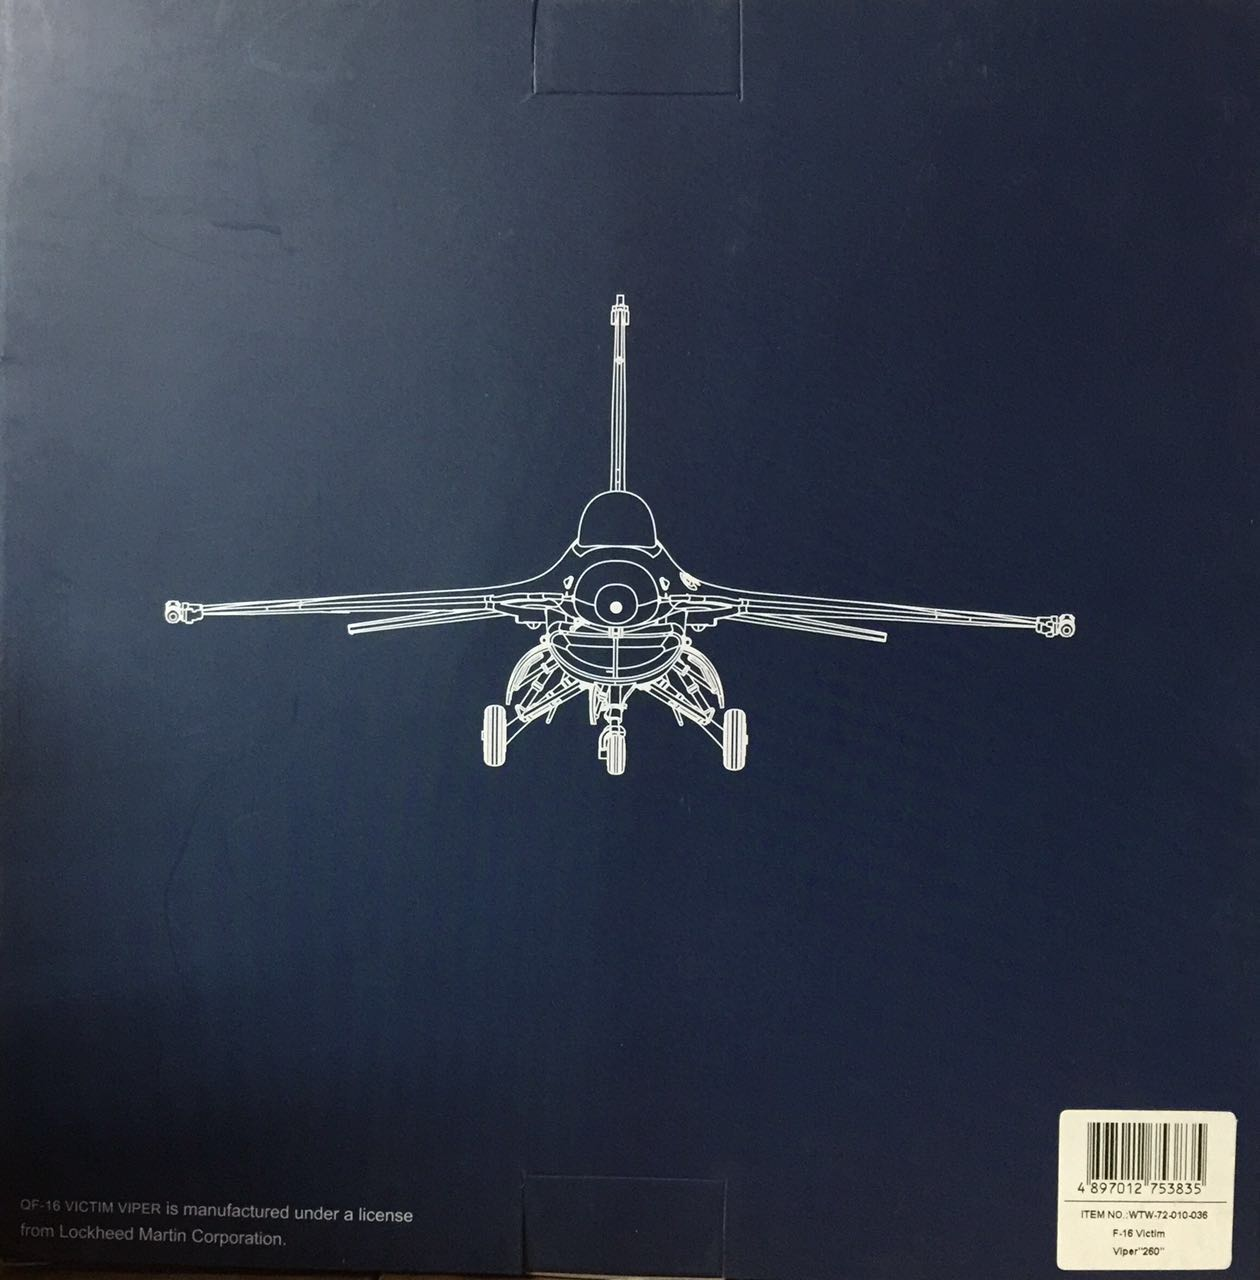 010-036 F-16 Victim Viper Witty; 260 1:72 Finished Model